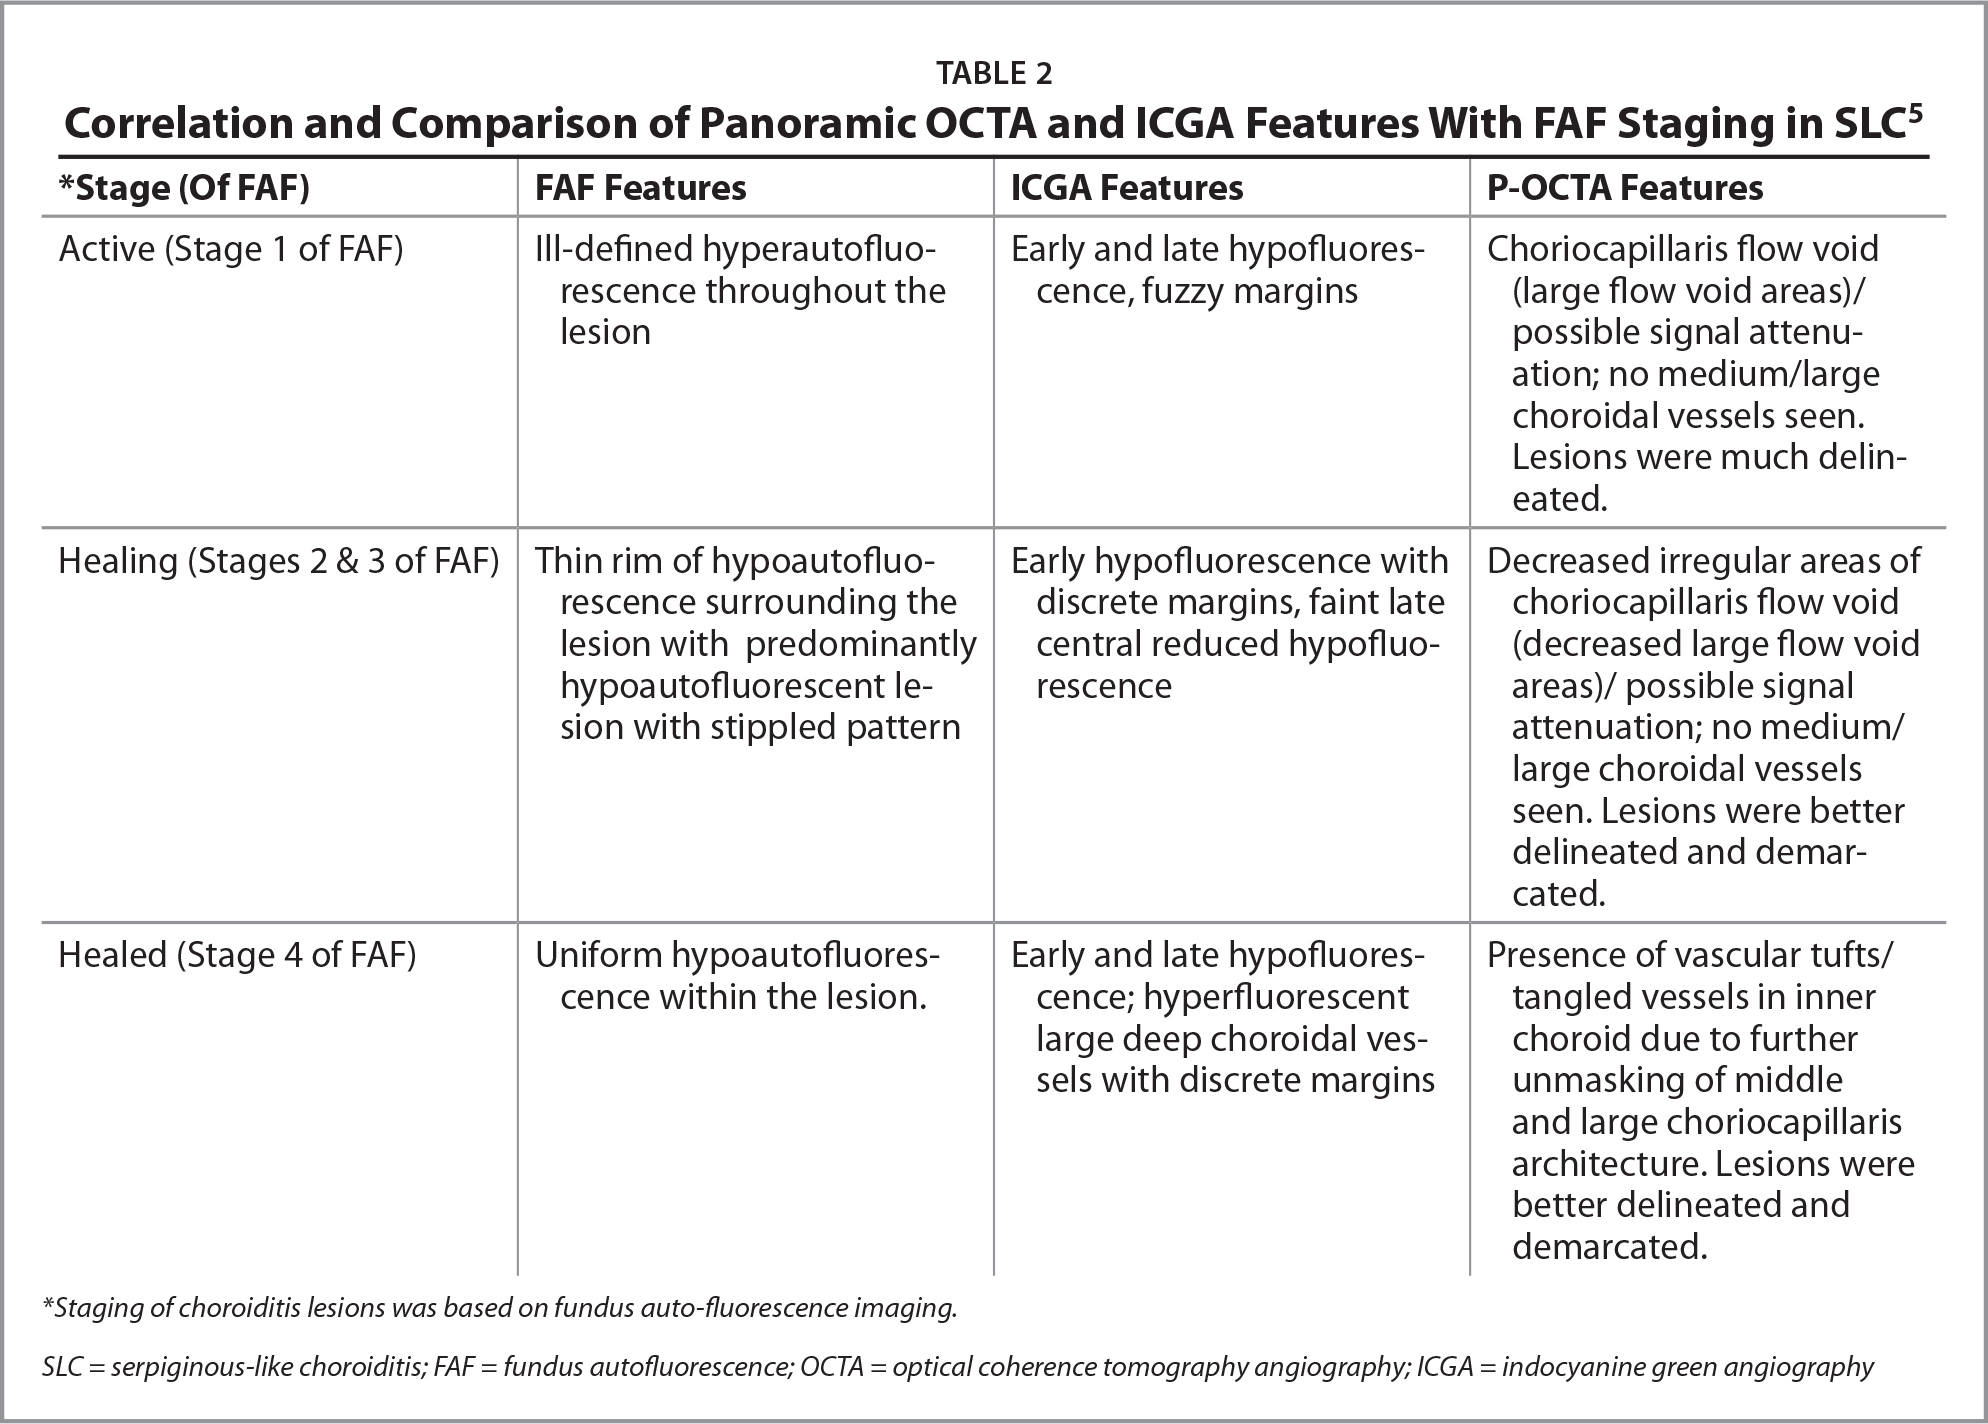 Correlation and Comparison of Panoramic OCTA and ICGA Features With FAF Staging in SLC5